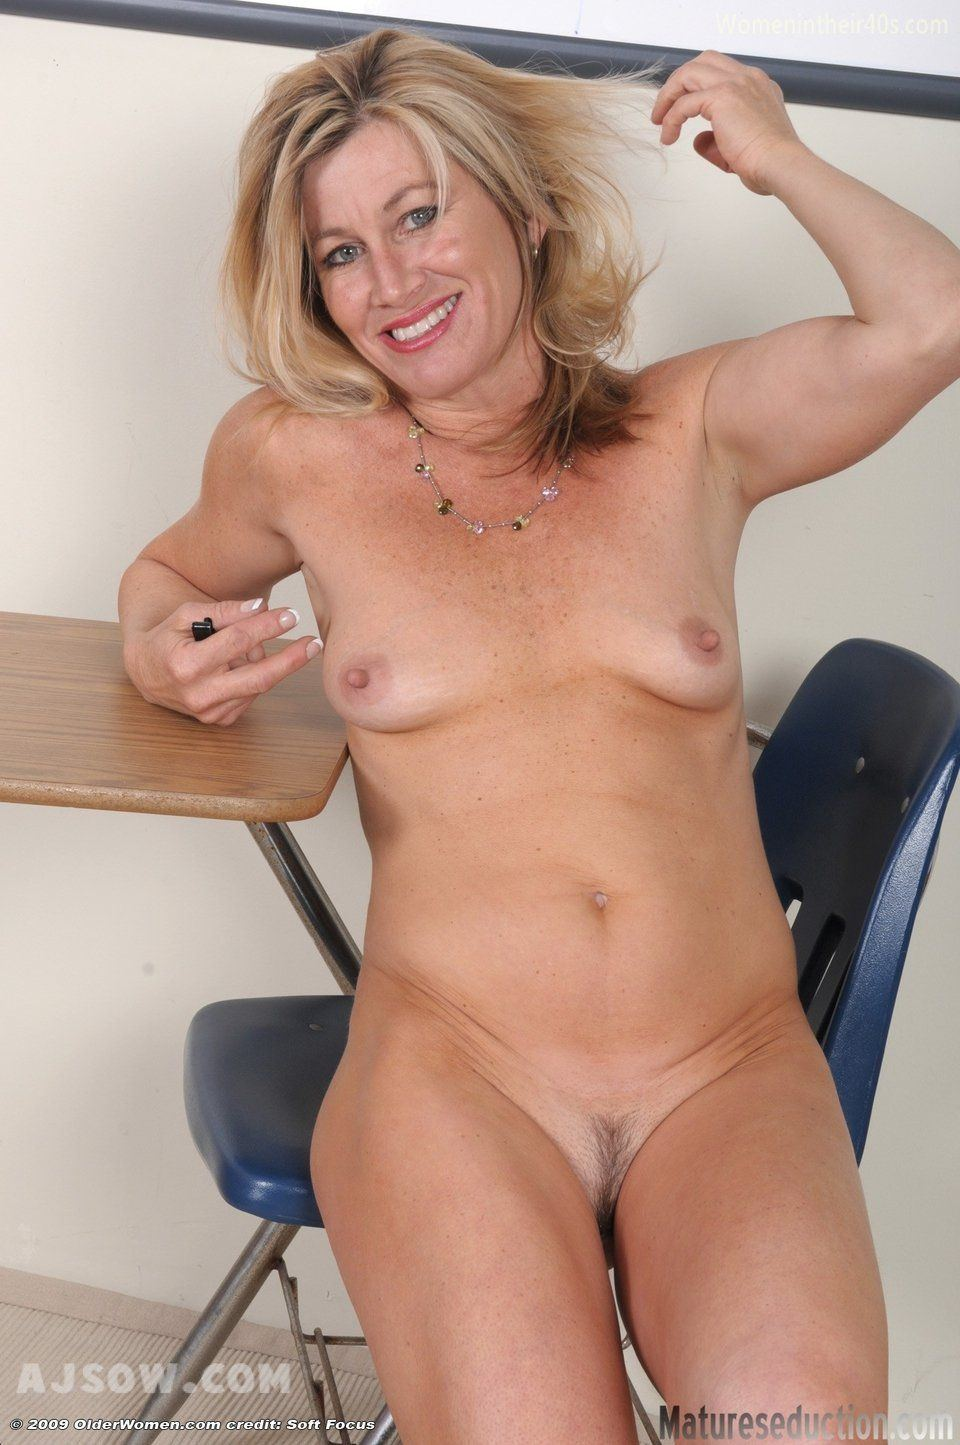 All Over 50 Nude Pics over50 mature nude women - 47 new porn photos.